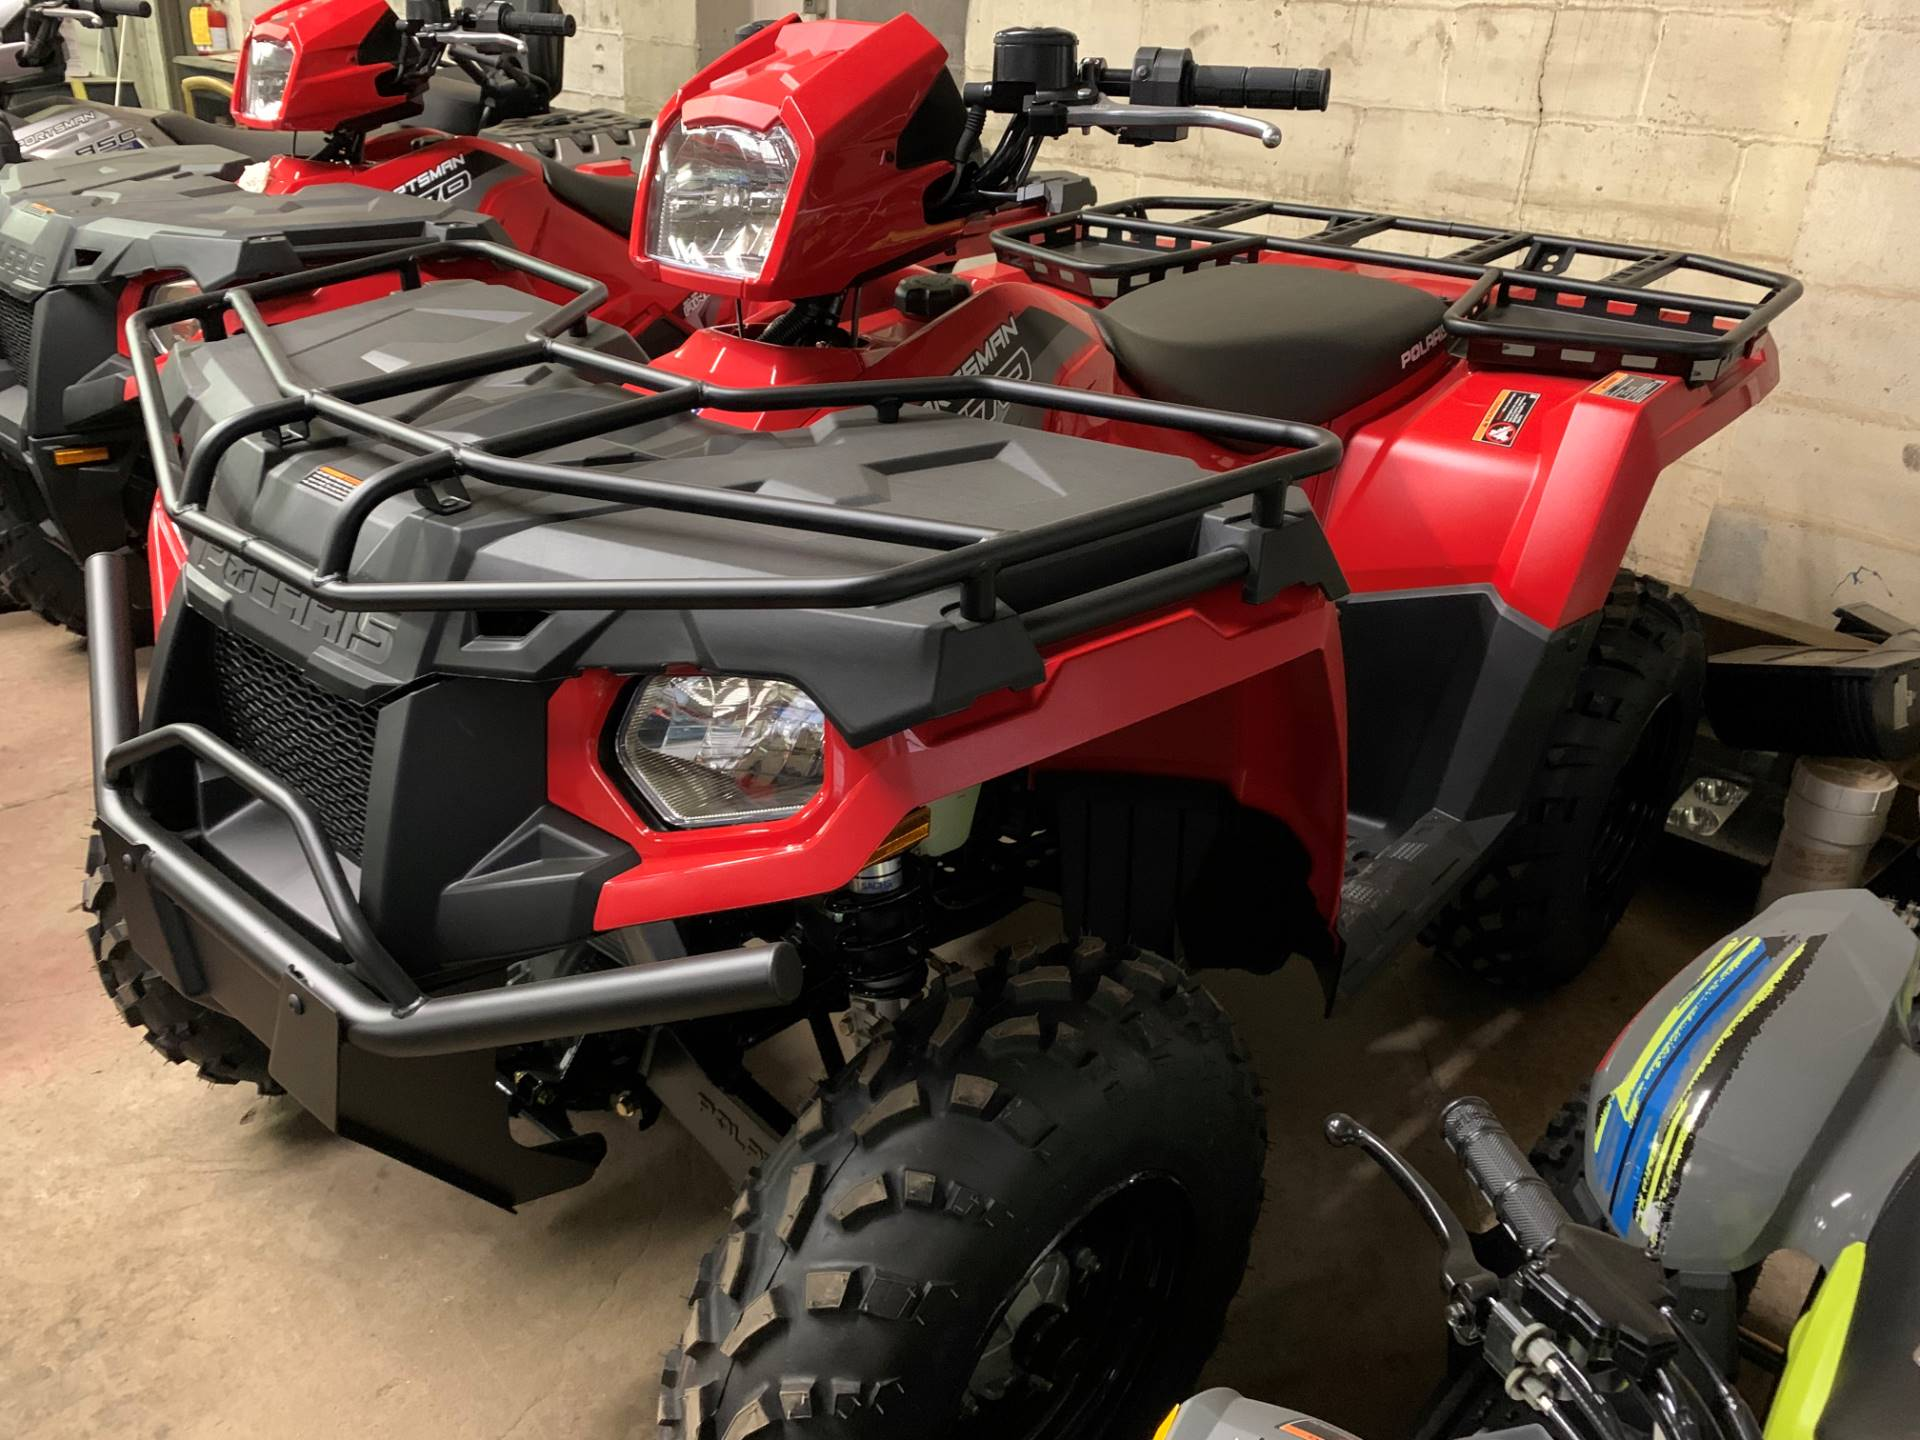 2020 Polaris Sportsman 570 Utility Package in Coraopolis, Pennsylvania - Photo 3